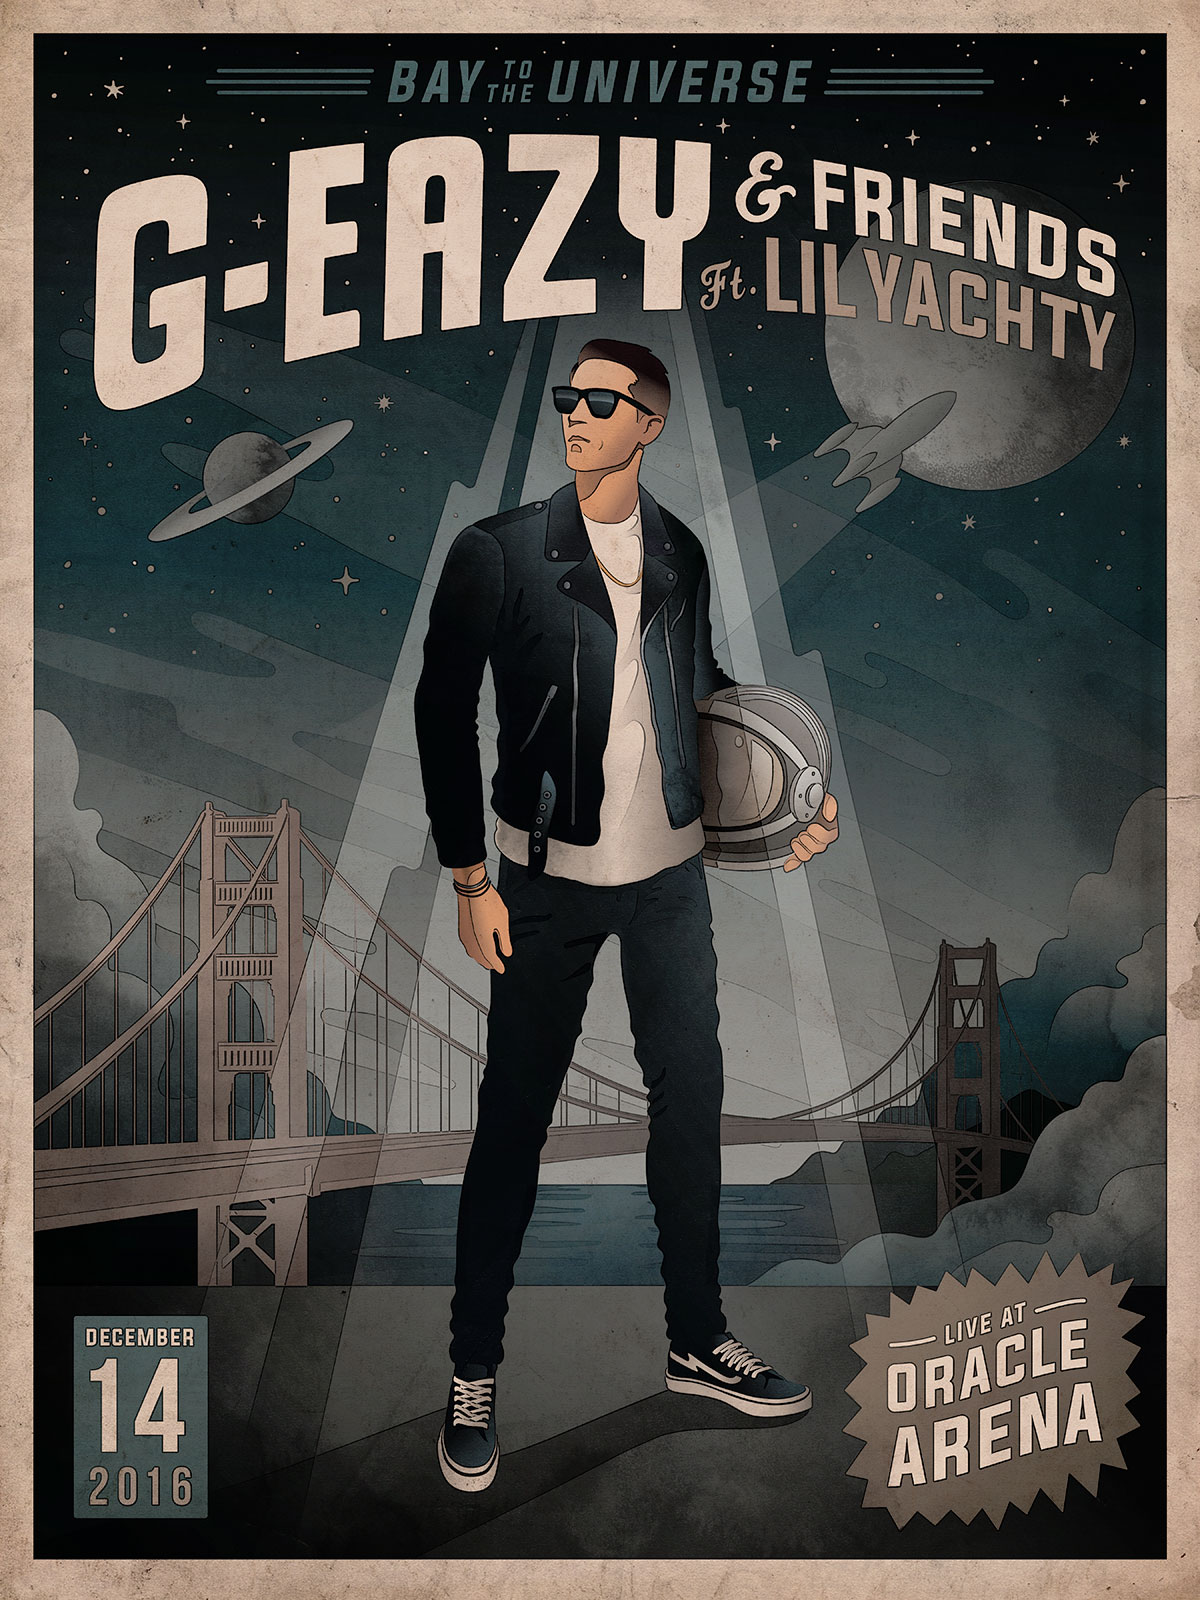 G_EAZY_POSTER_RGB_300dpi_HIGH-RES-LAYERED.jpg